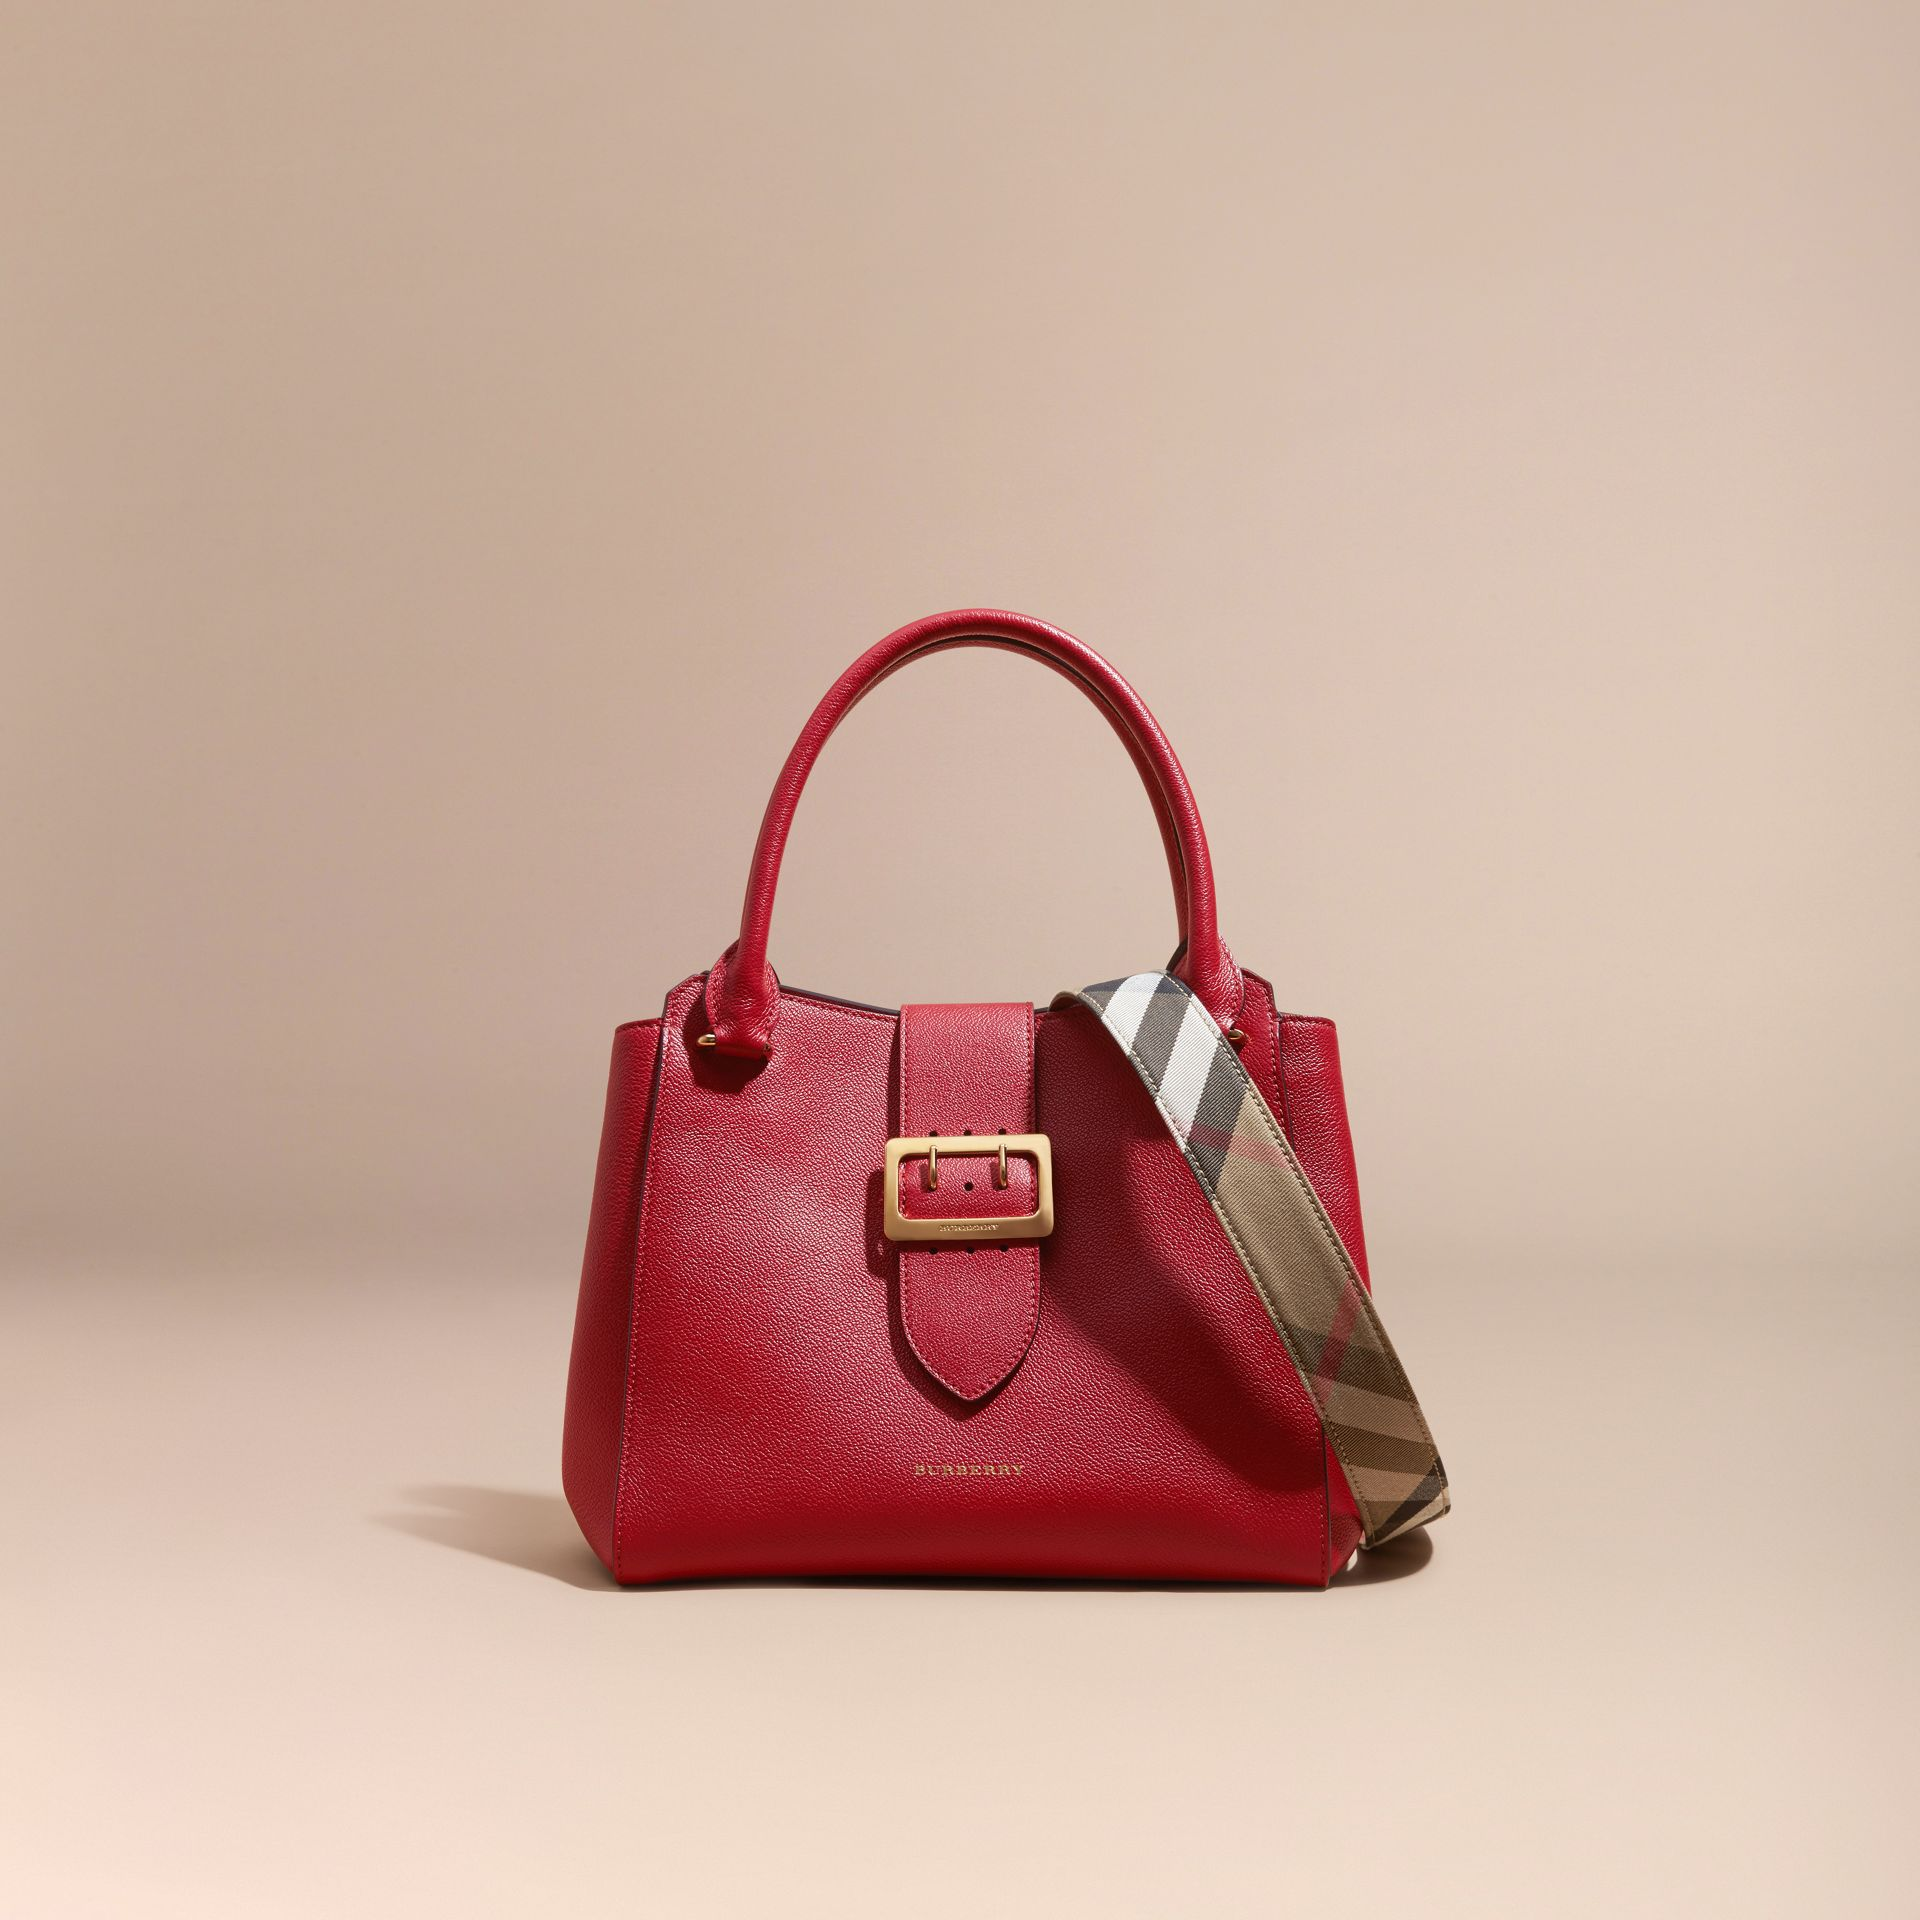 Sac tote The Buckle medium en cuir grainé (Rouge Parade) - photo de la galerie 9